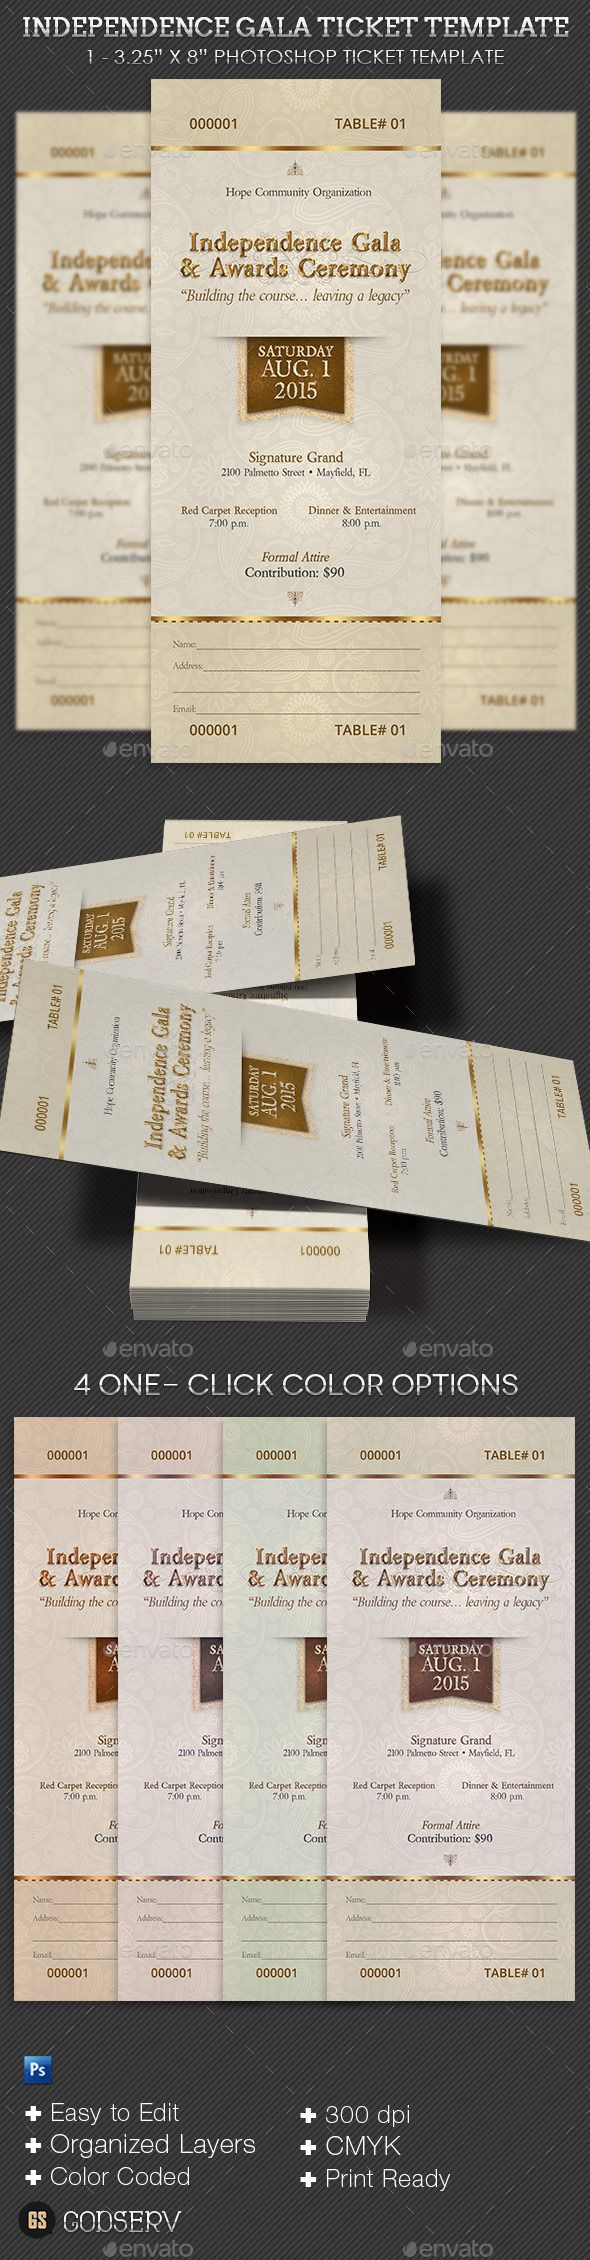 Independence Gala Ticket Template 14 best Church